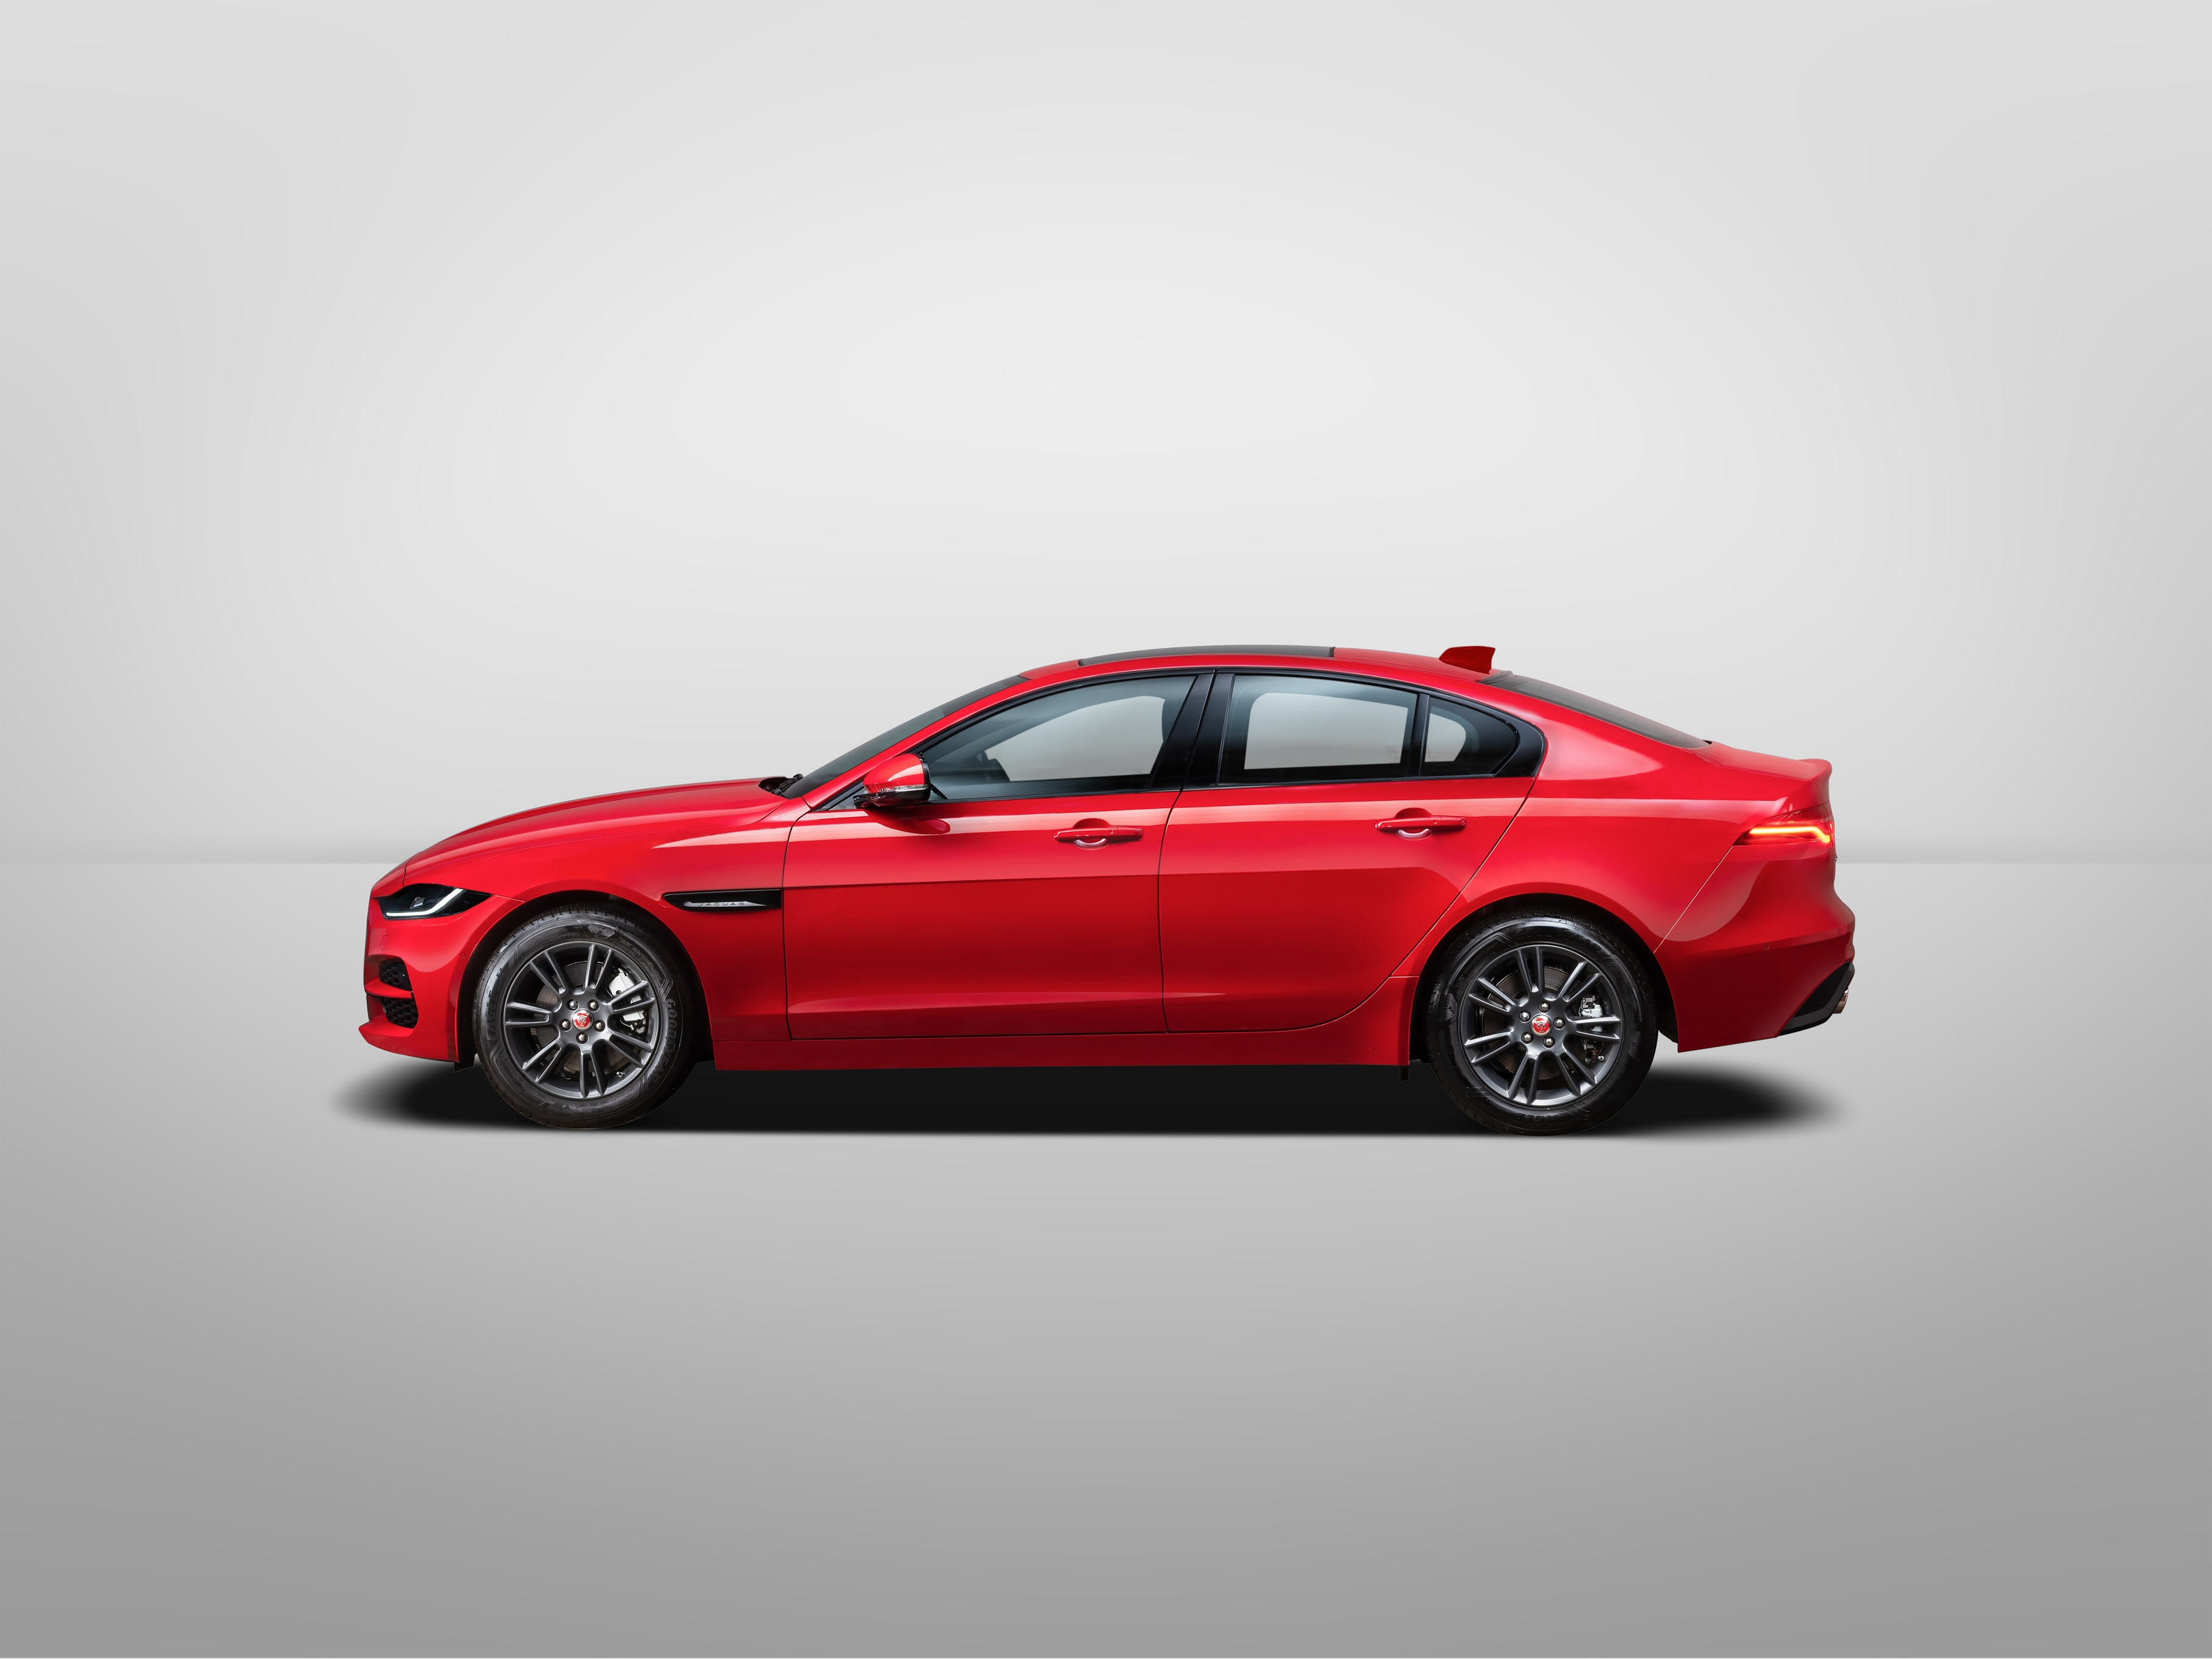 The XE was always a looker but in its latest version, appears even more so.